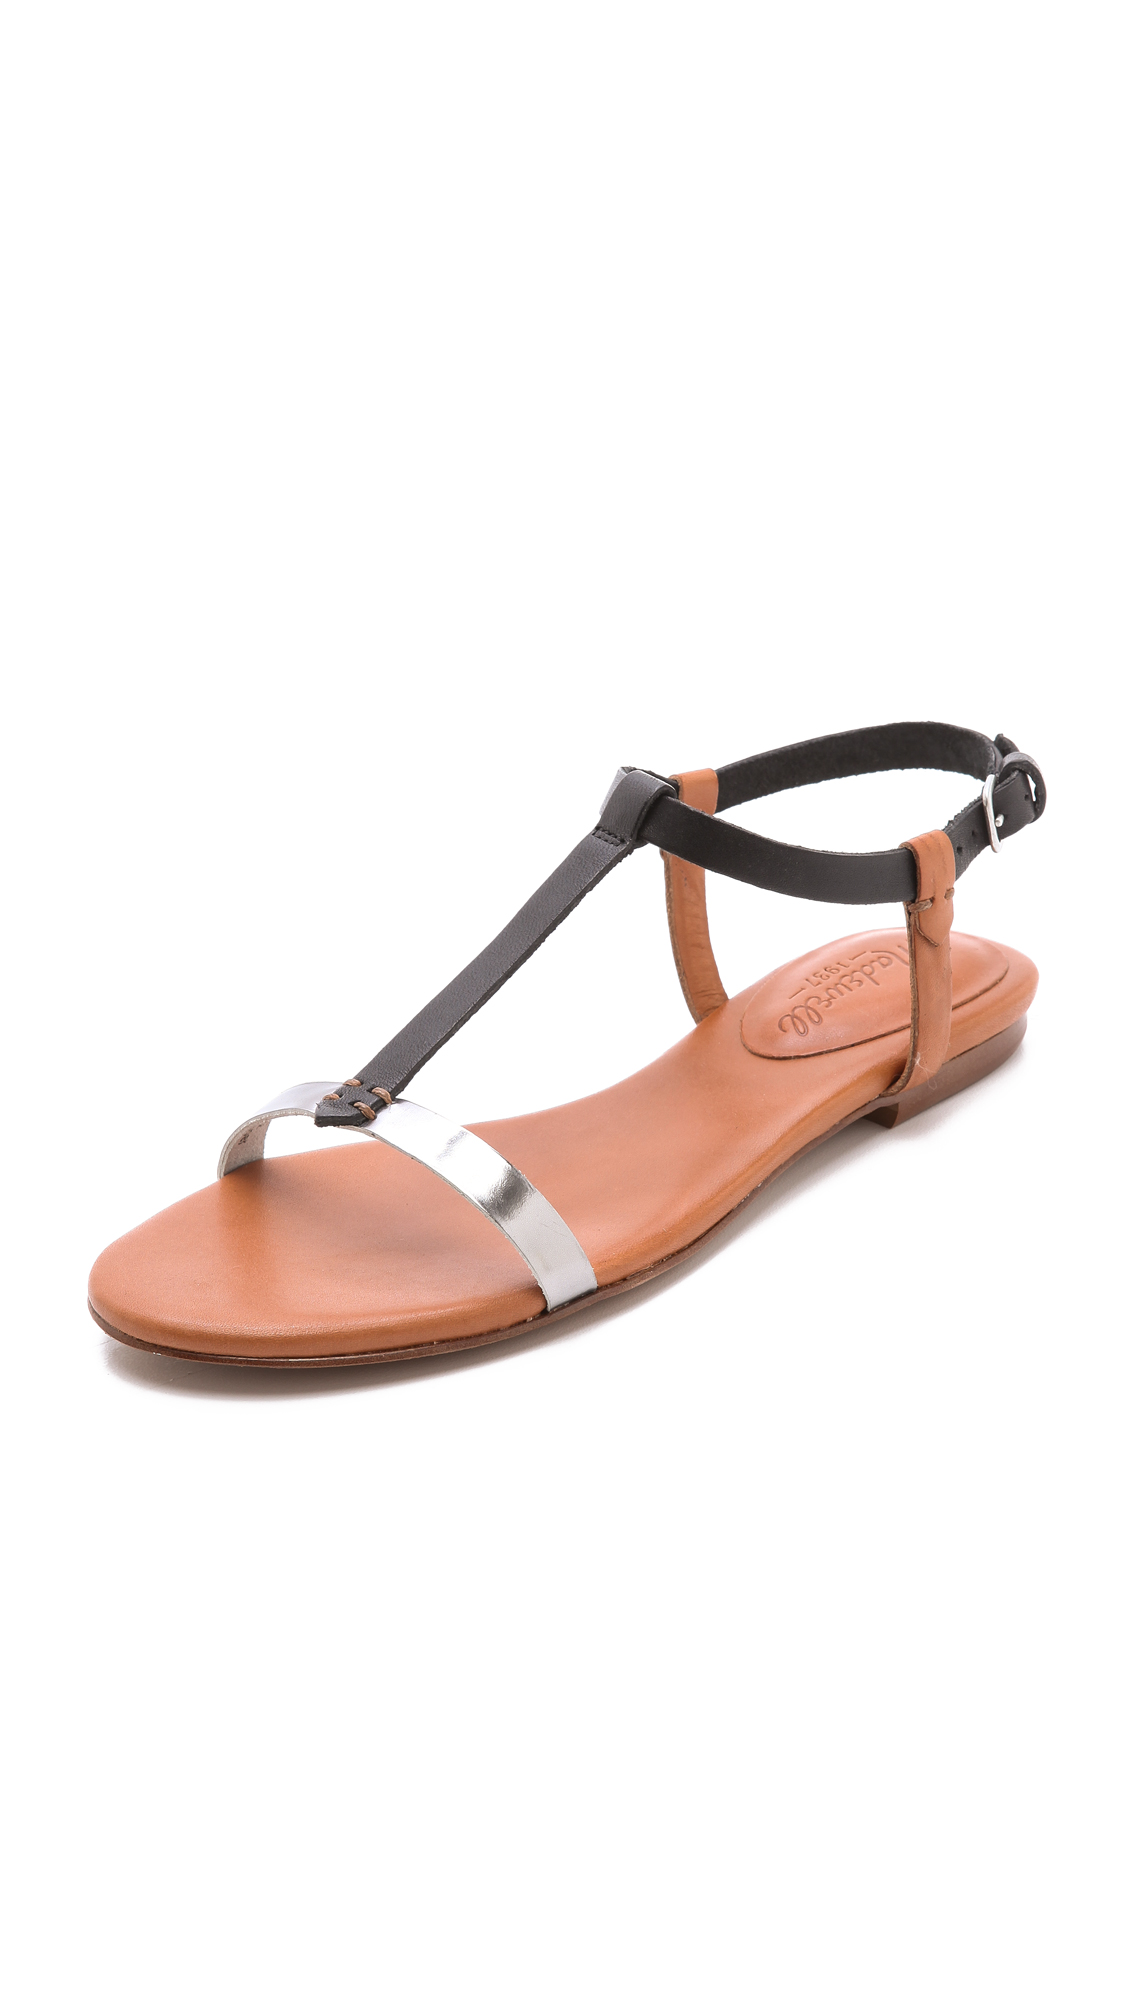 d9c80d26bafba2 Lyst - Madewell T Strap Flat Sandals in Brown